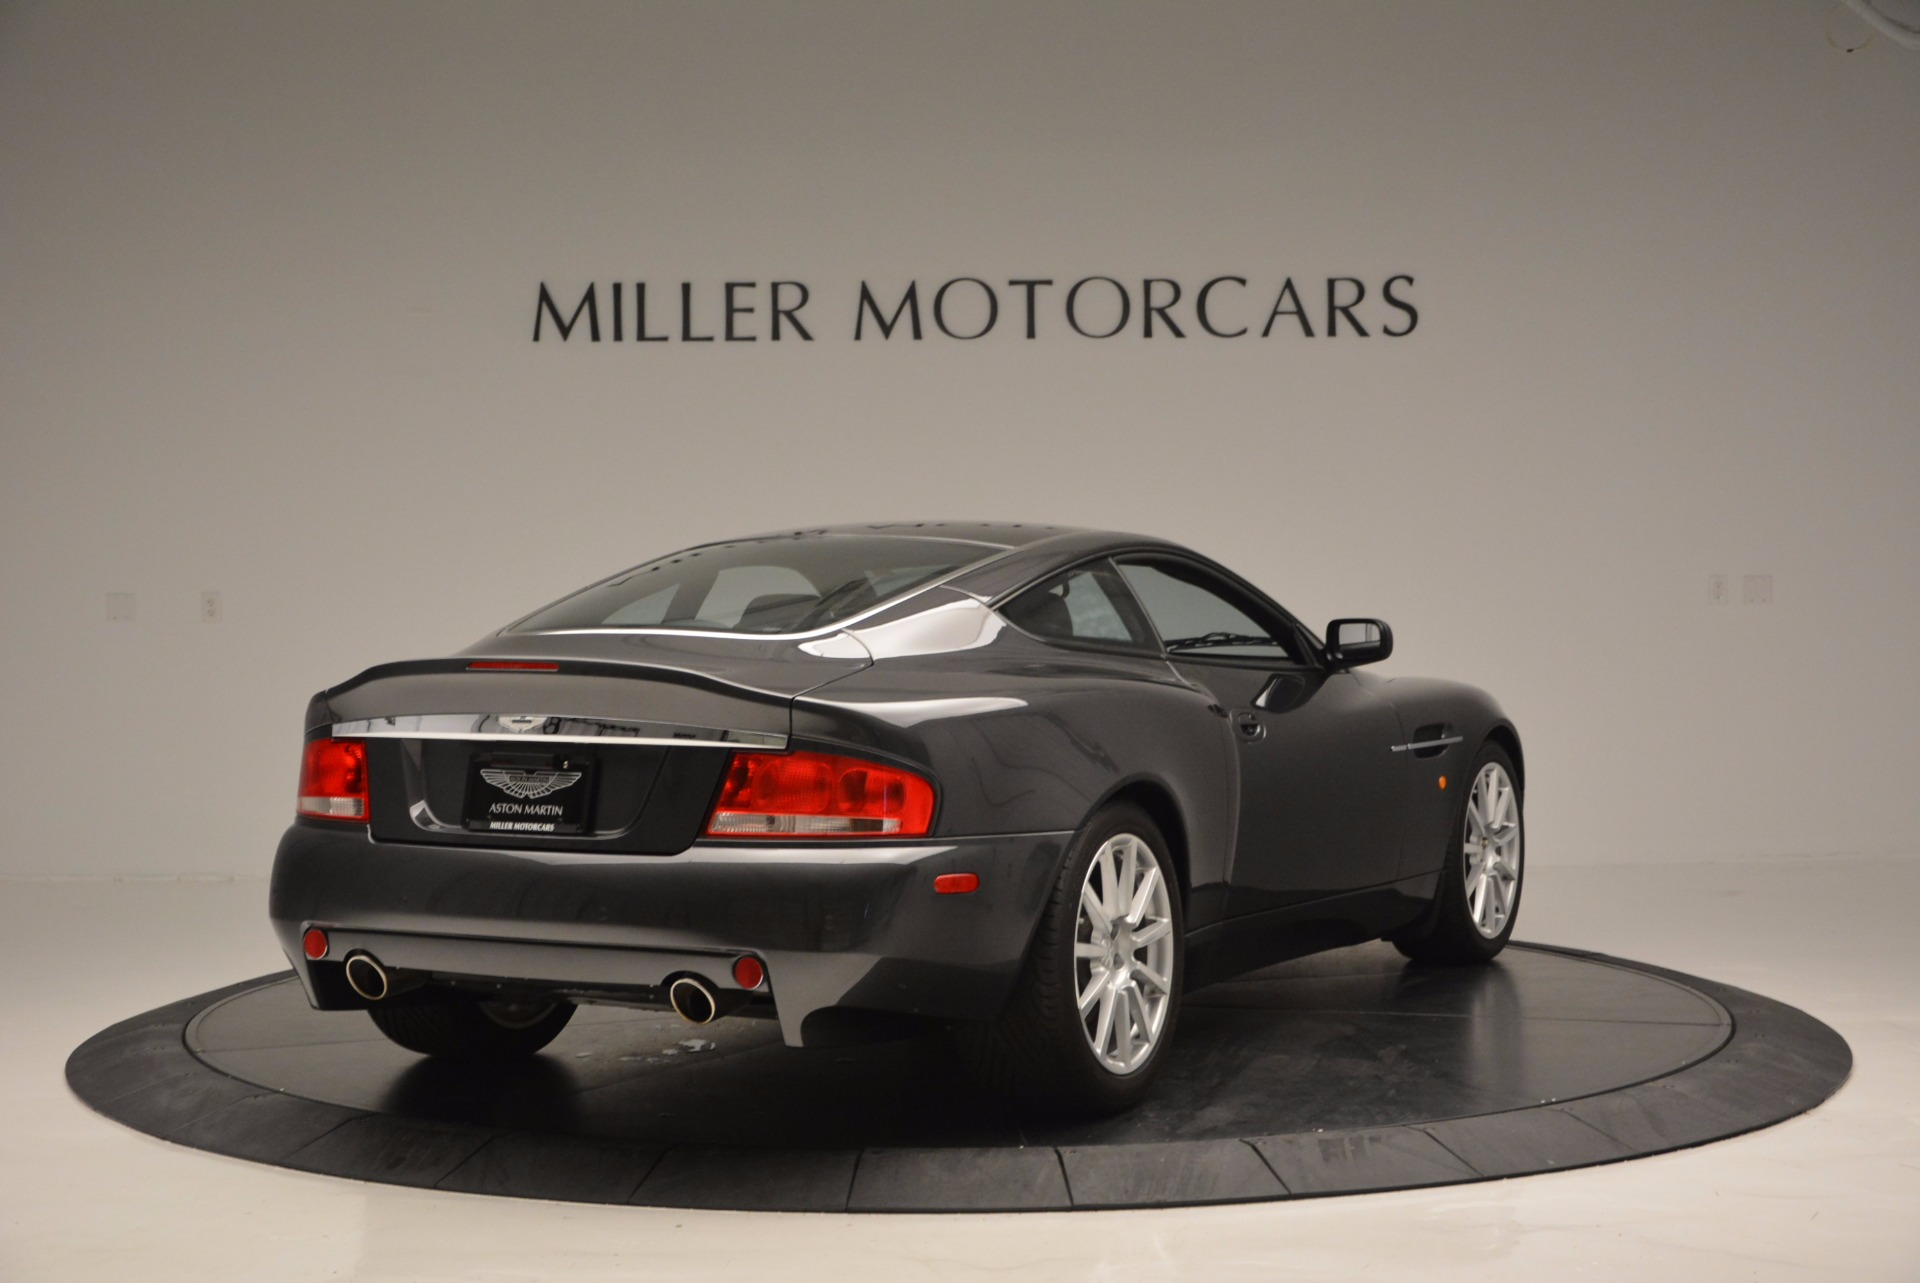 Used 2005 Aston Martin V12 Vanquish S For Sale In Westport, CT 645_p7